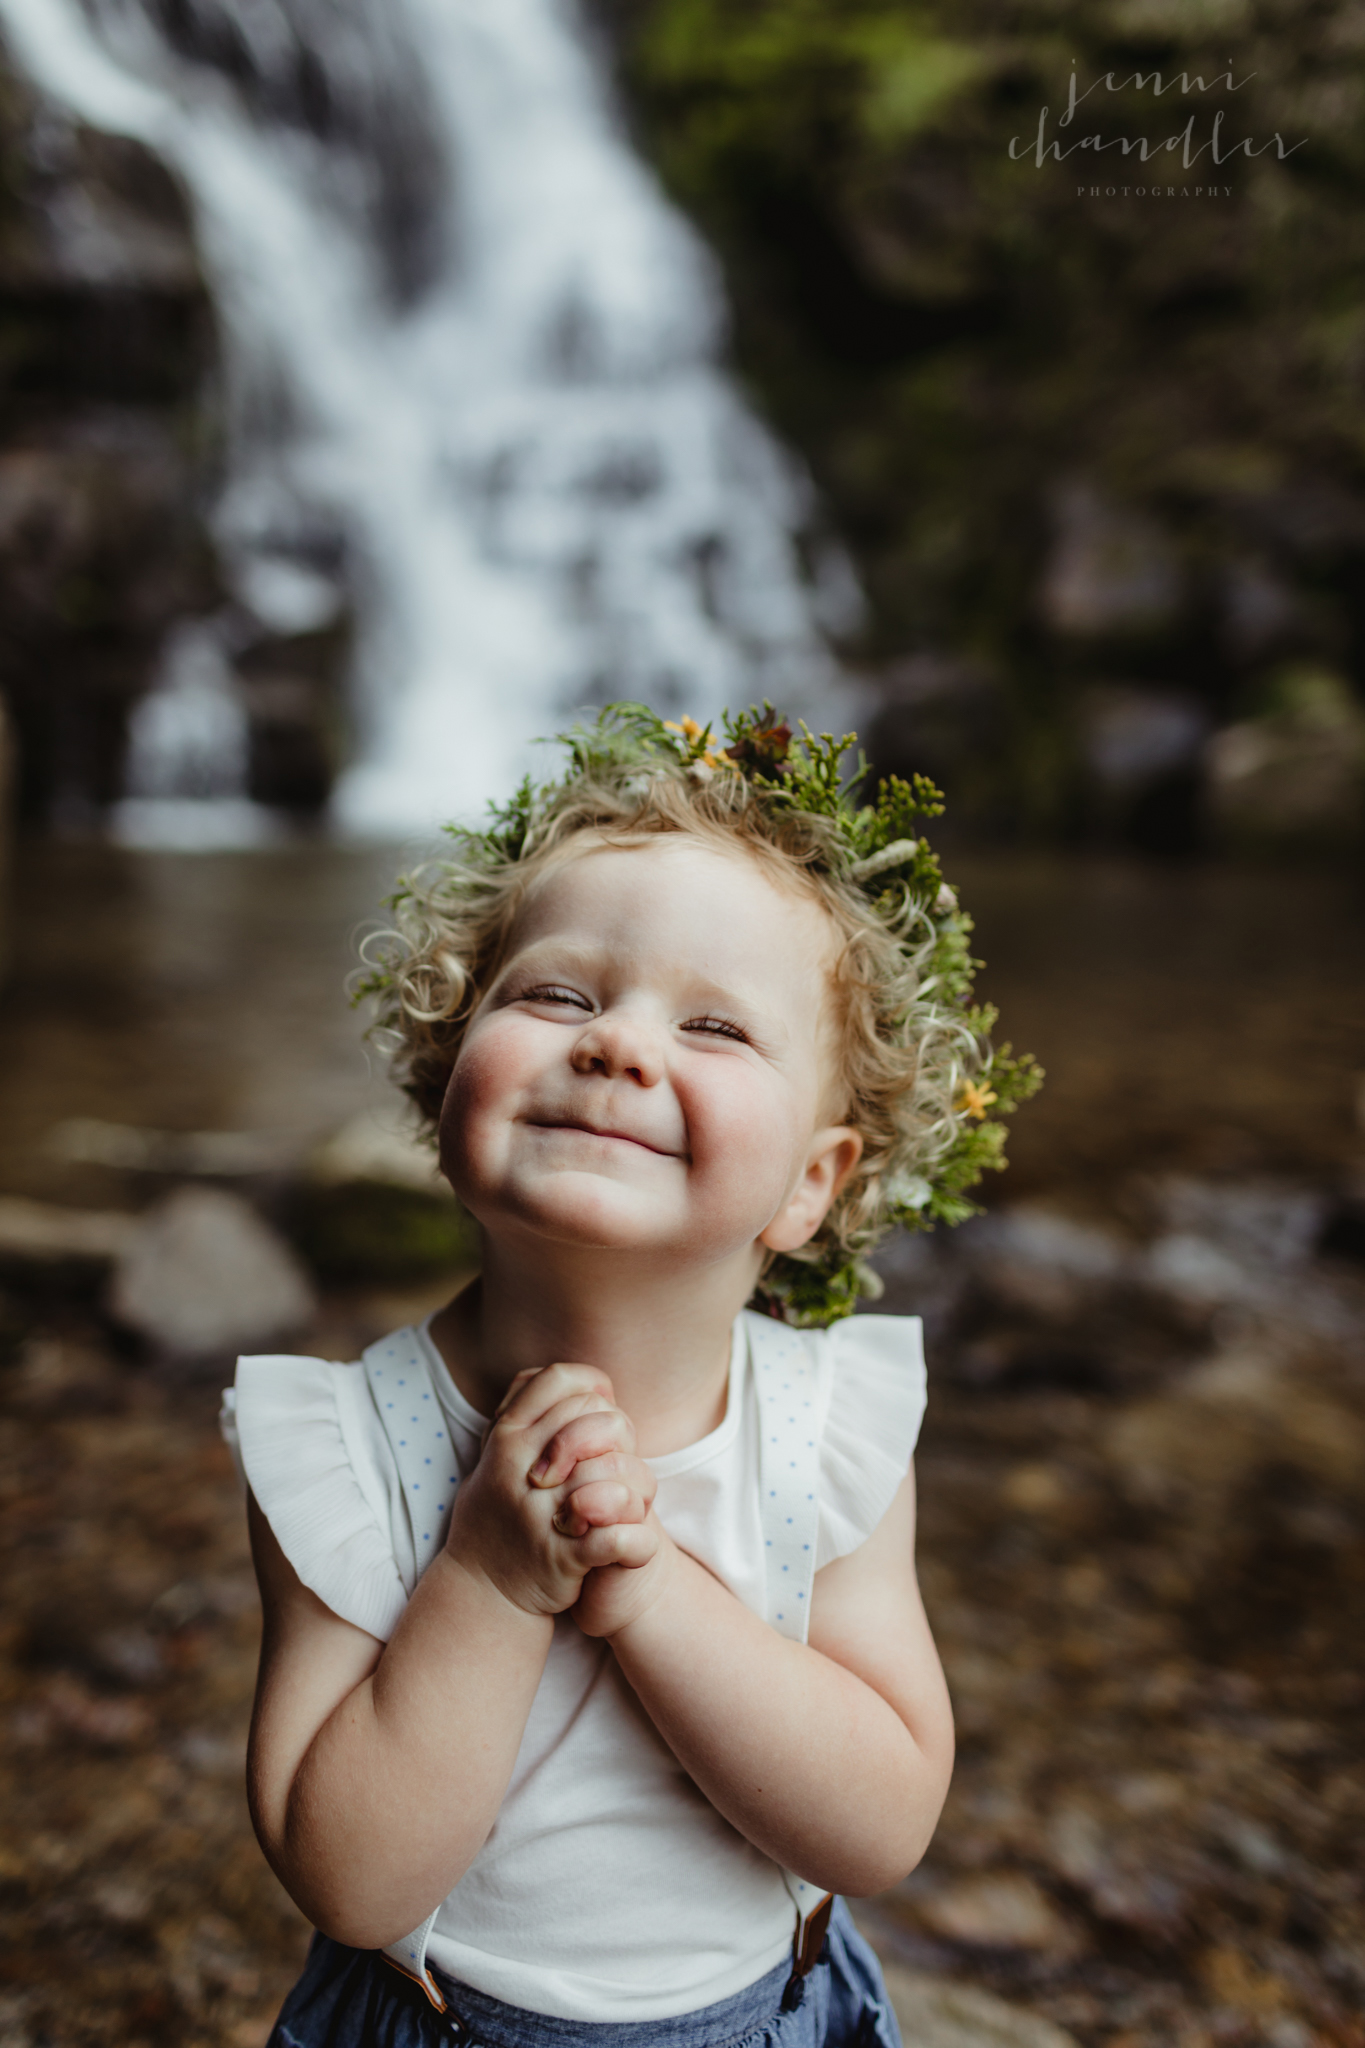 Brevard North Carolina Family Photographer, Jenni Chandler Photography, Western North Carolina, Waterfalls, Eastatoe Falls, Transylvania County, Mommy and Me Session, Family Photographer,